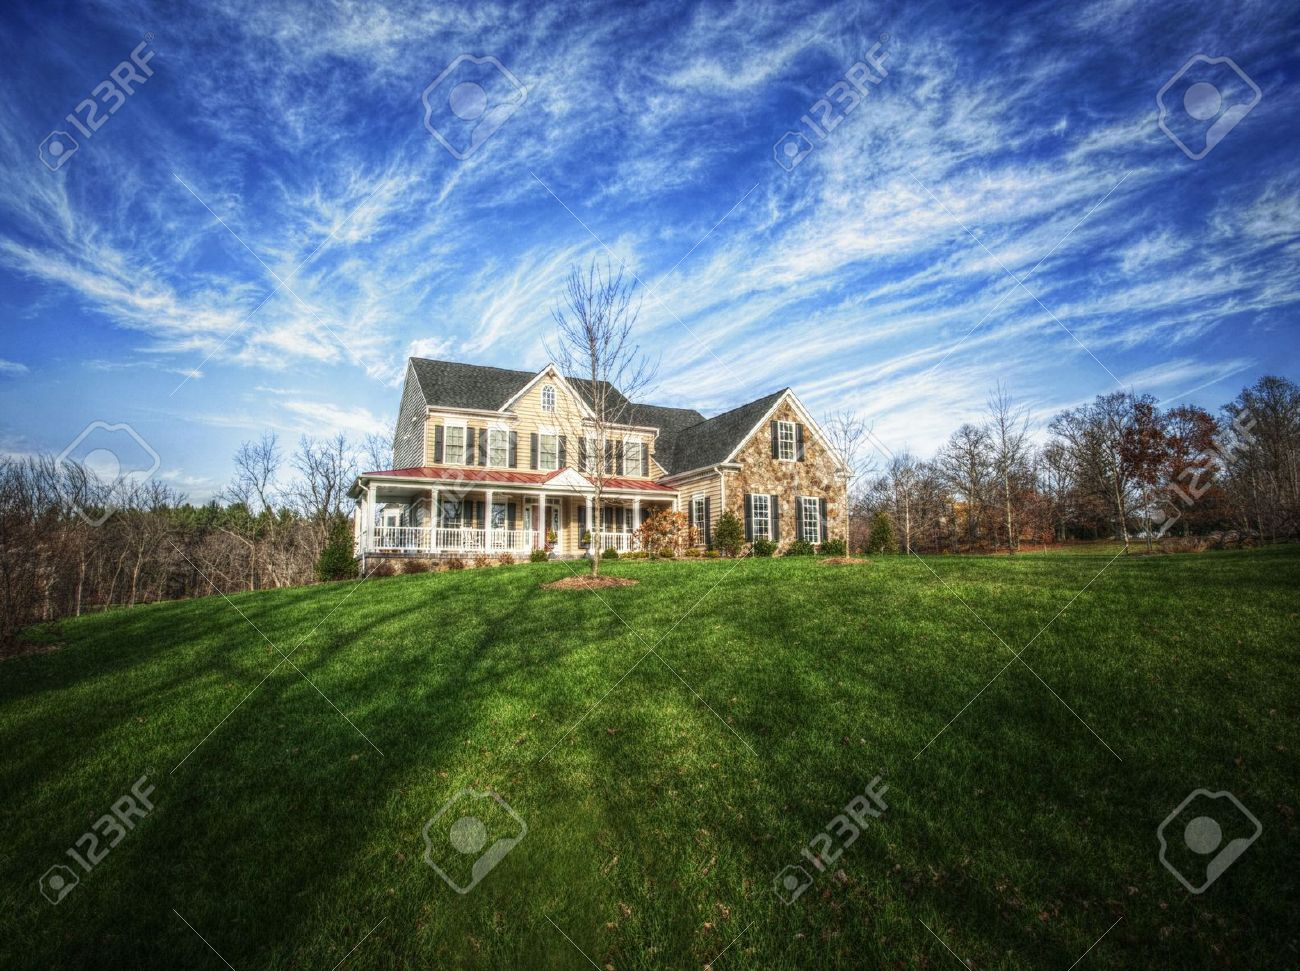 Wide angle view of a traditional home and large yard, with blue sky and cirrus clouds. Horizontal format. Stock Photo - 6249165